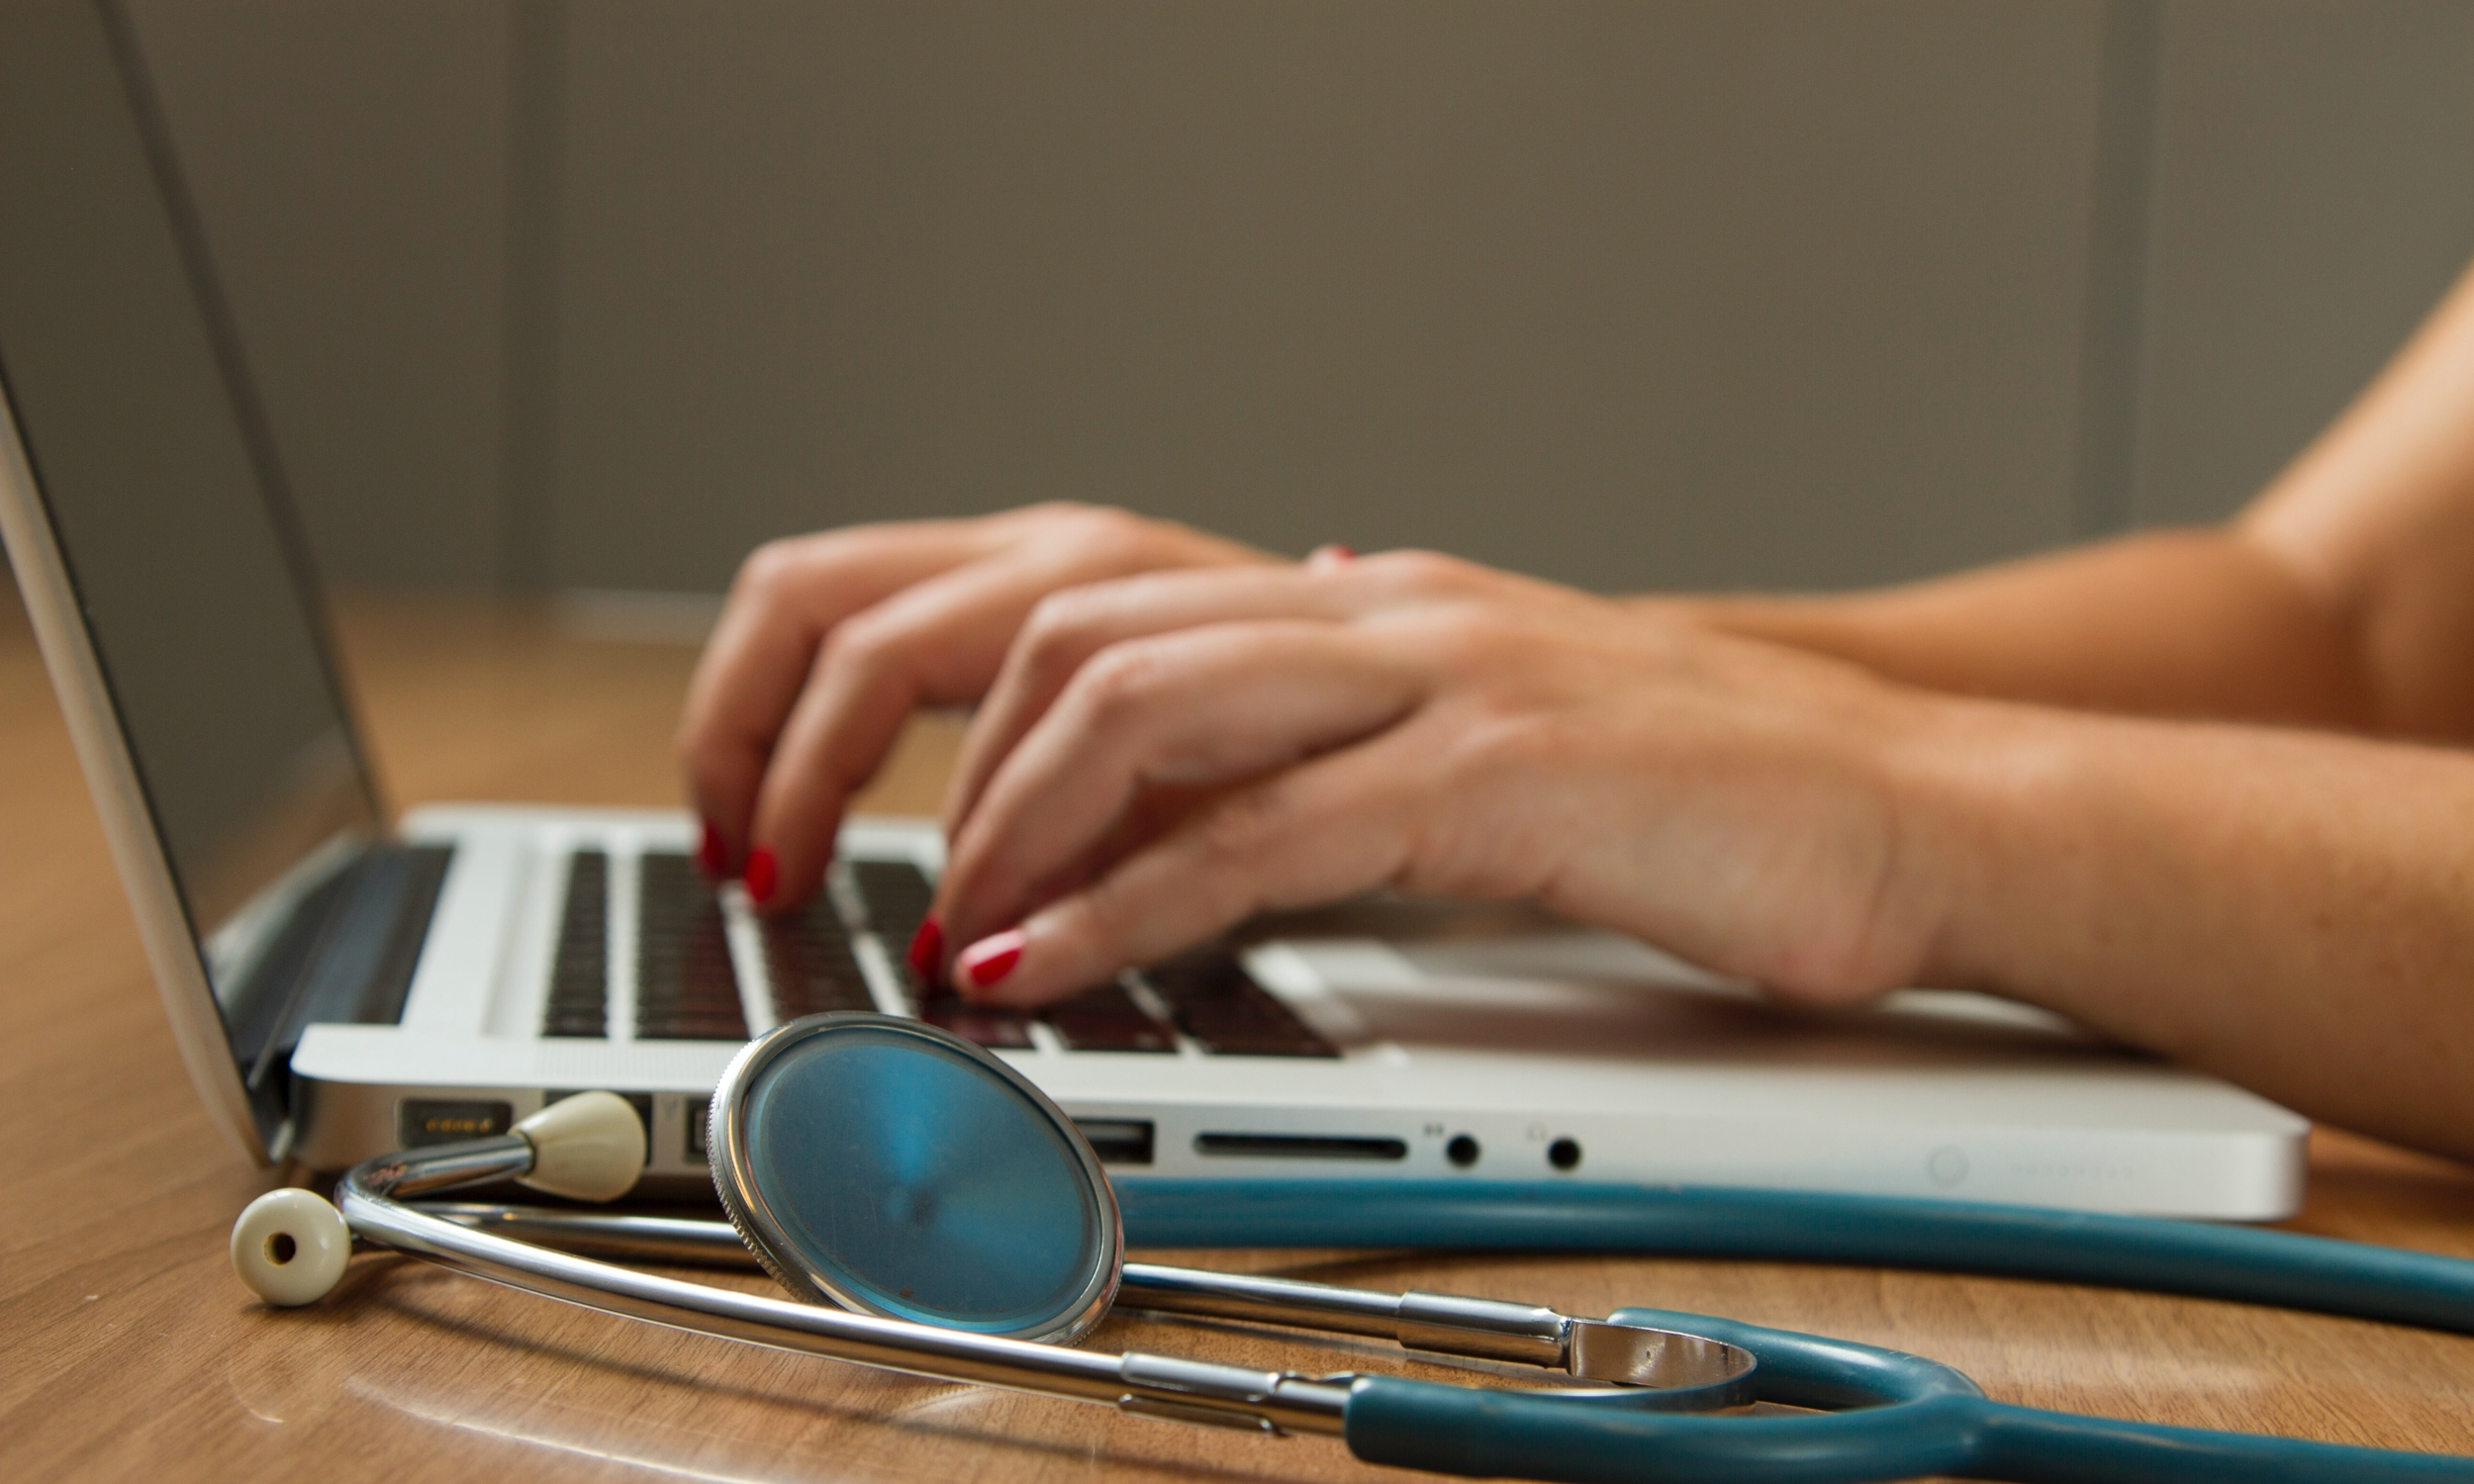 White hands with pink nails typing on a laptop. Next to the laptop is a stethoscope.